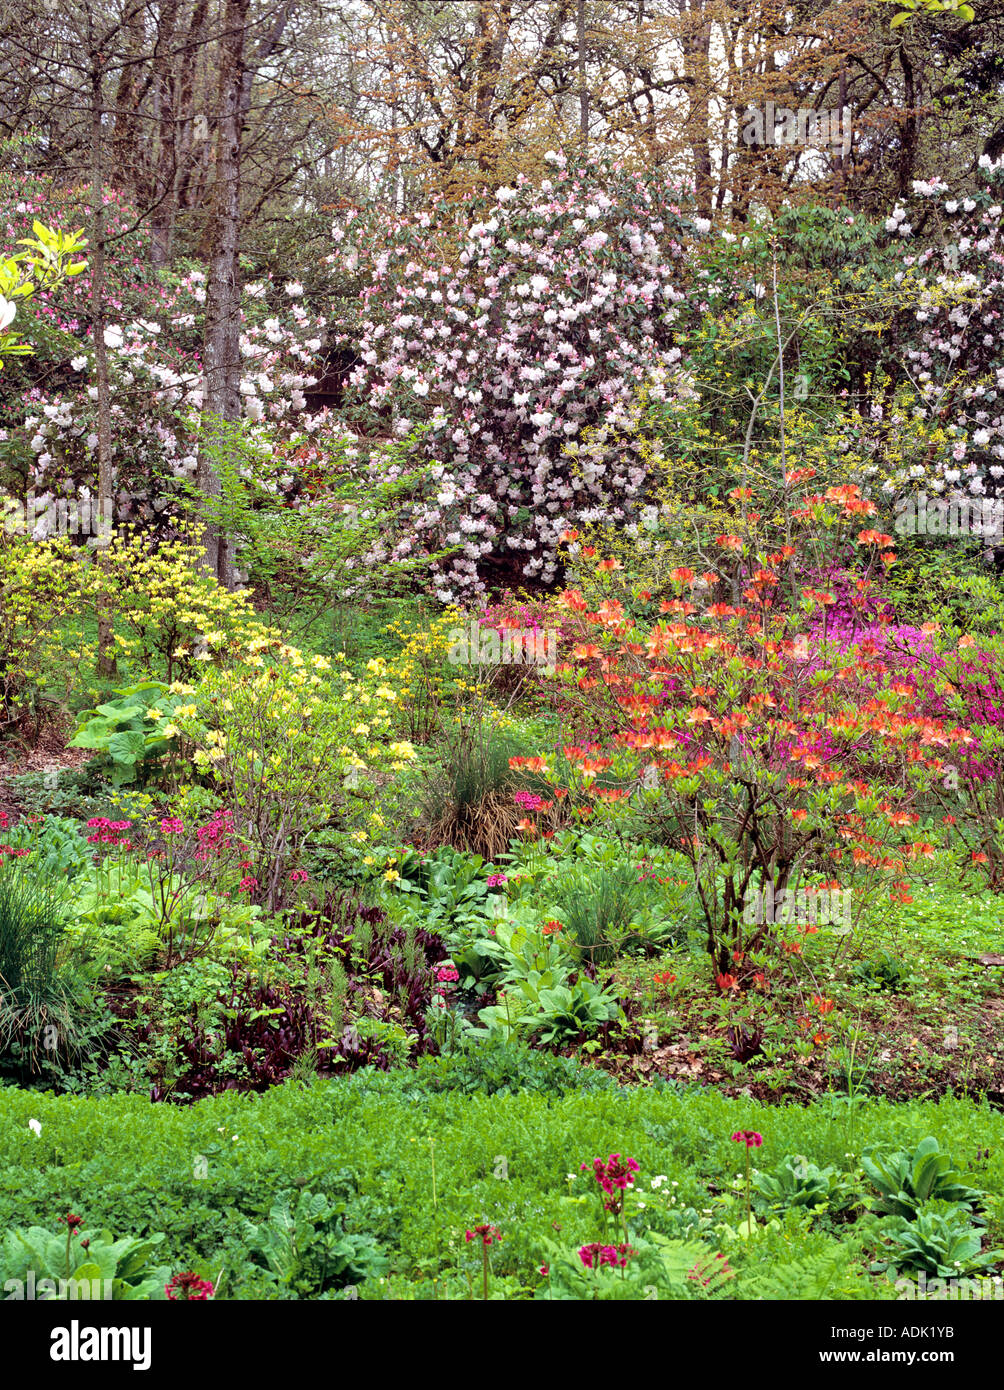 Garden with blooming rhododendrons at Hendricks Park Eugene Oregon - Stock Image